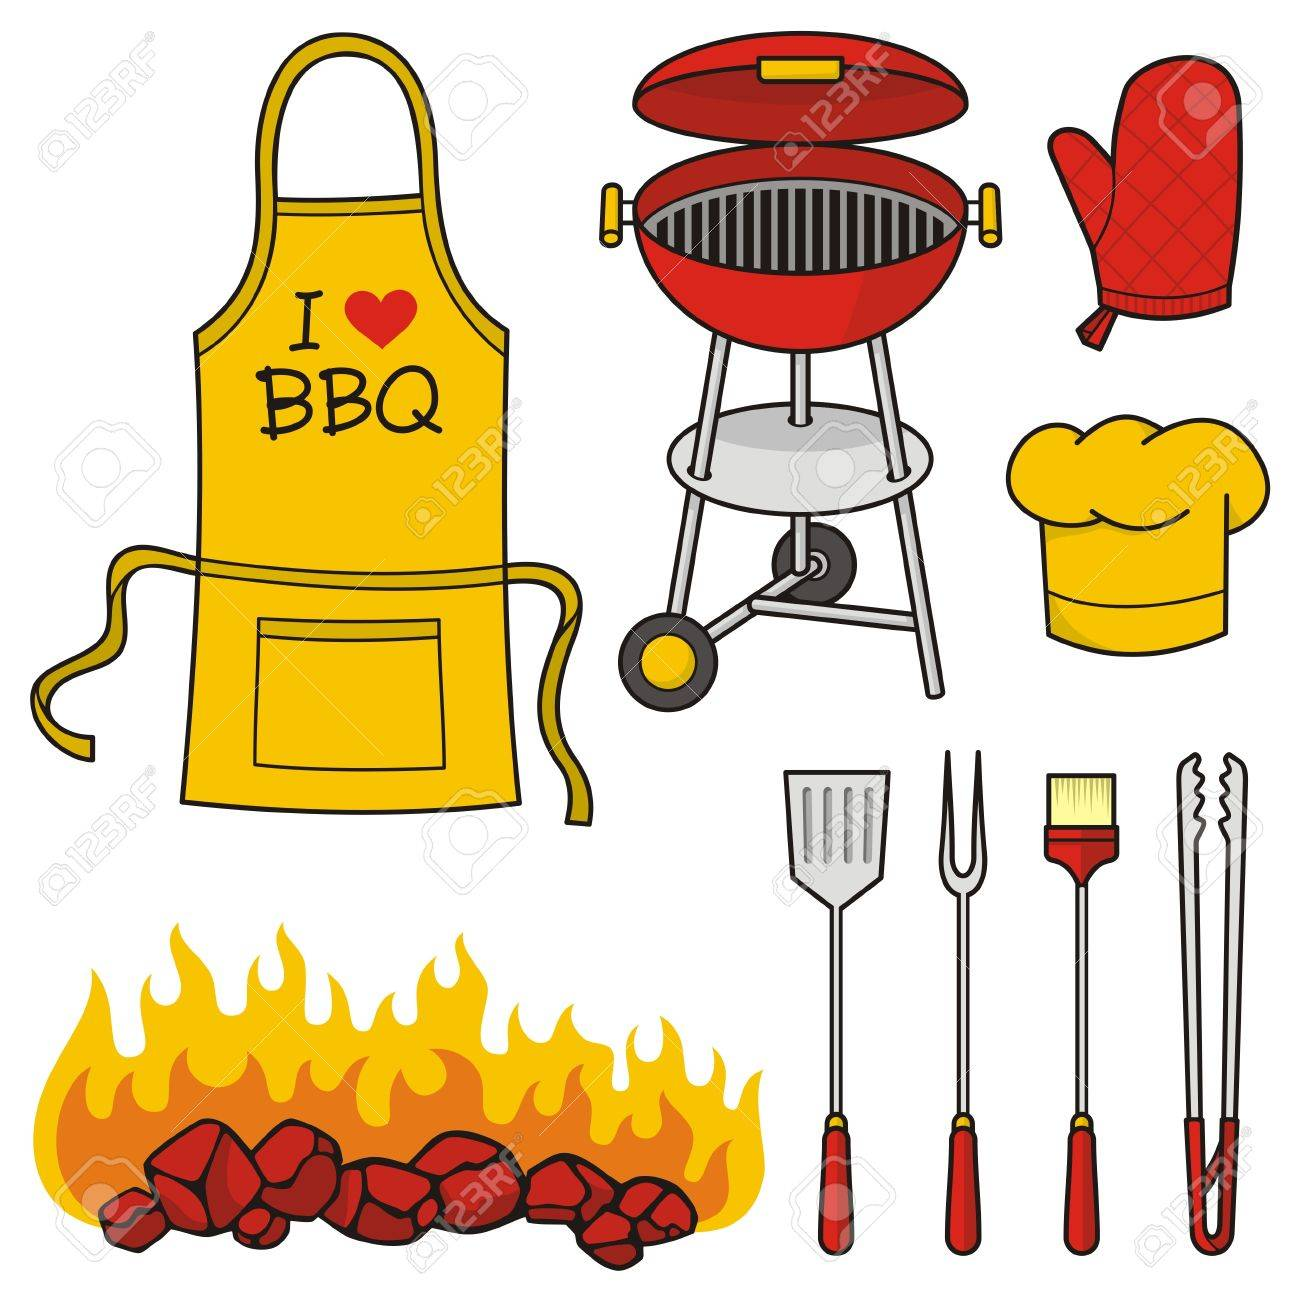 A set of barbeque icons isolated on white background. - 10615608